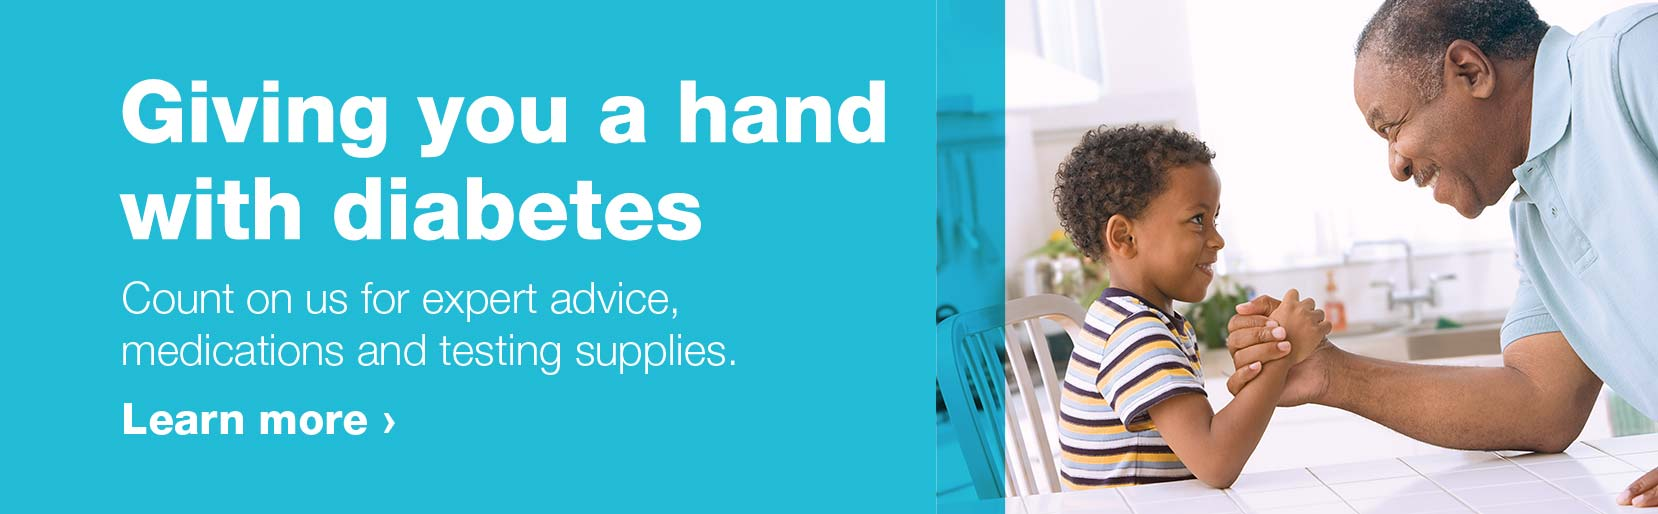 Giving you a hand with diabetes. Count on us for expert advice, medications and testing supplies. Learn more.